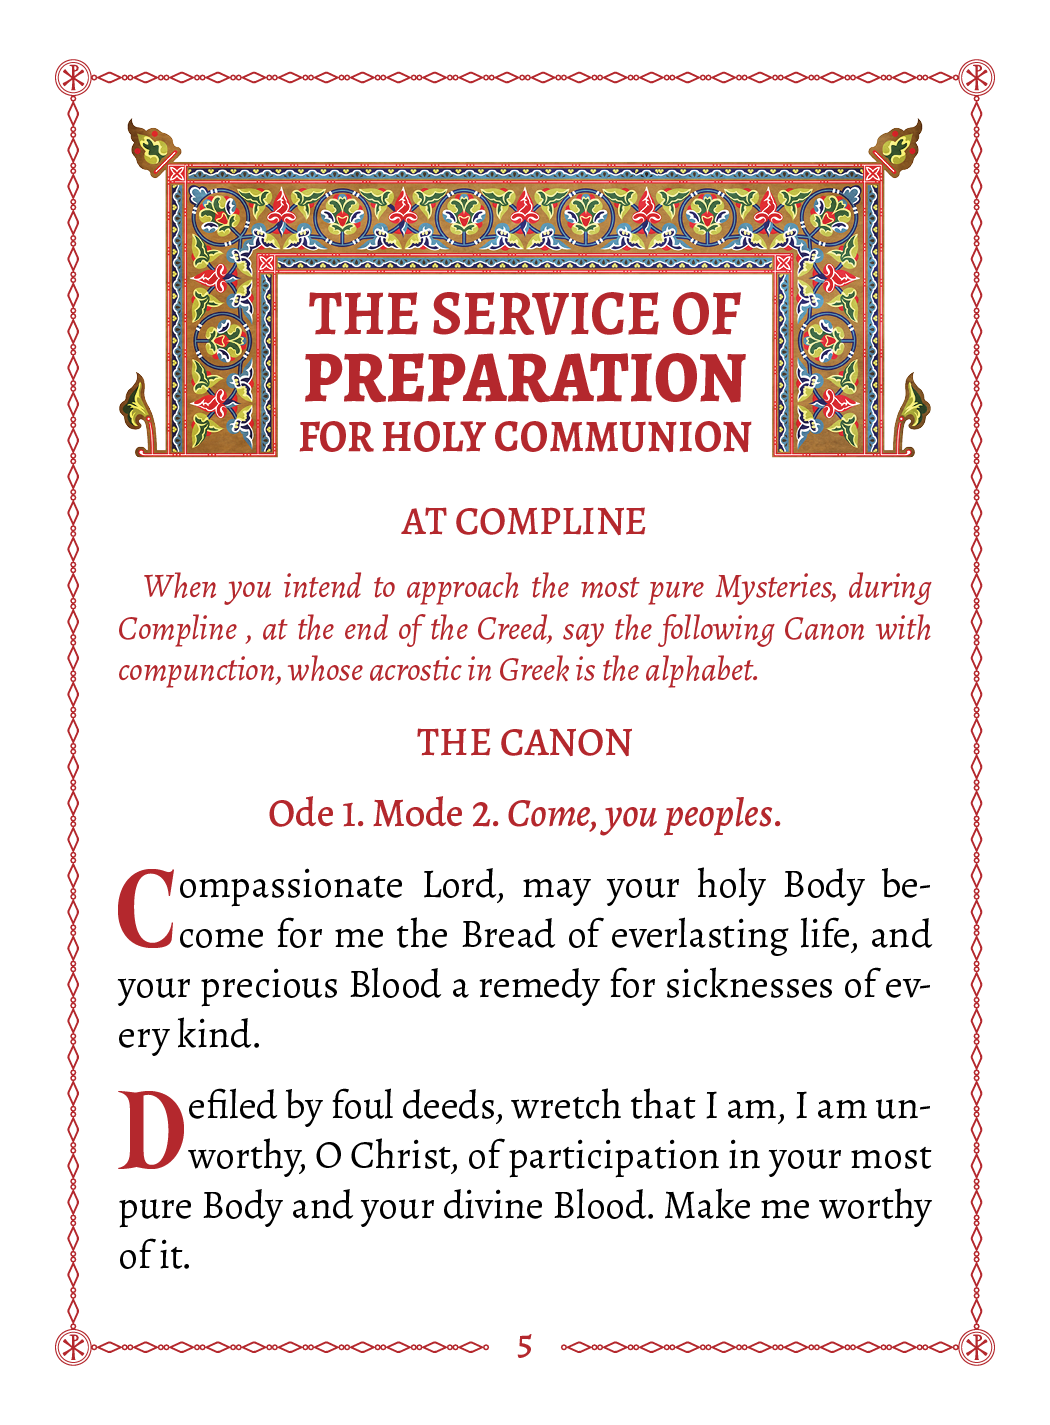 Service of Preparation for Holy Communion